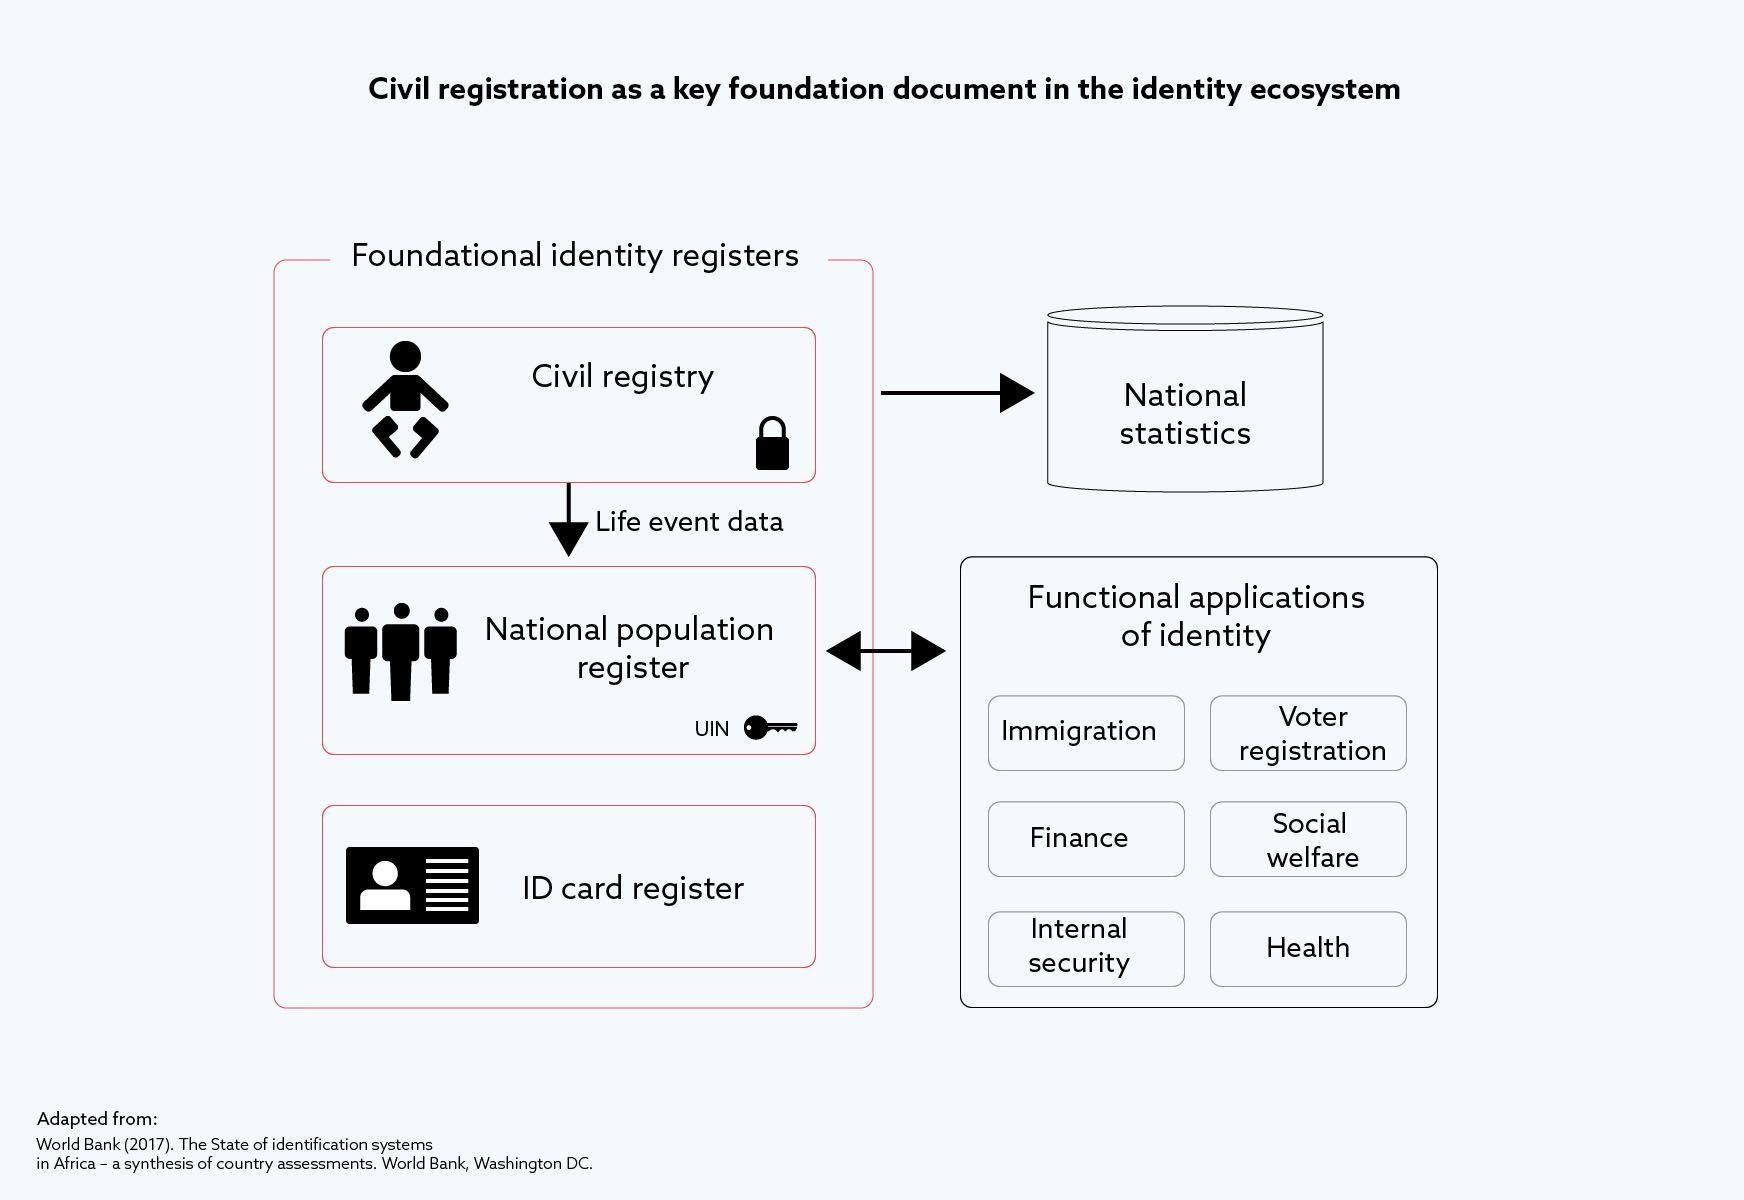 Civil registration as a key foundation document in the identity ecosystem